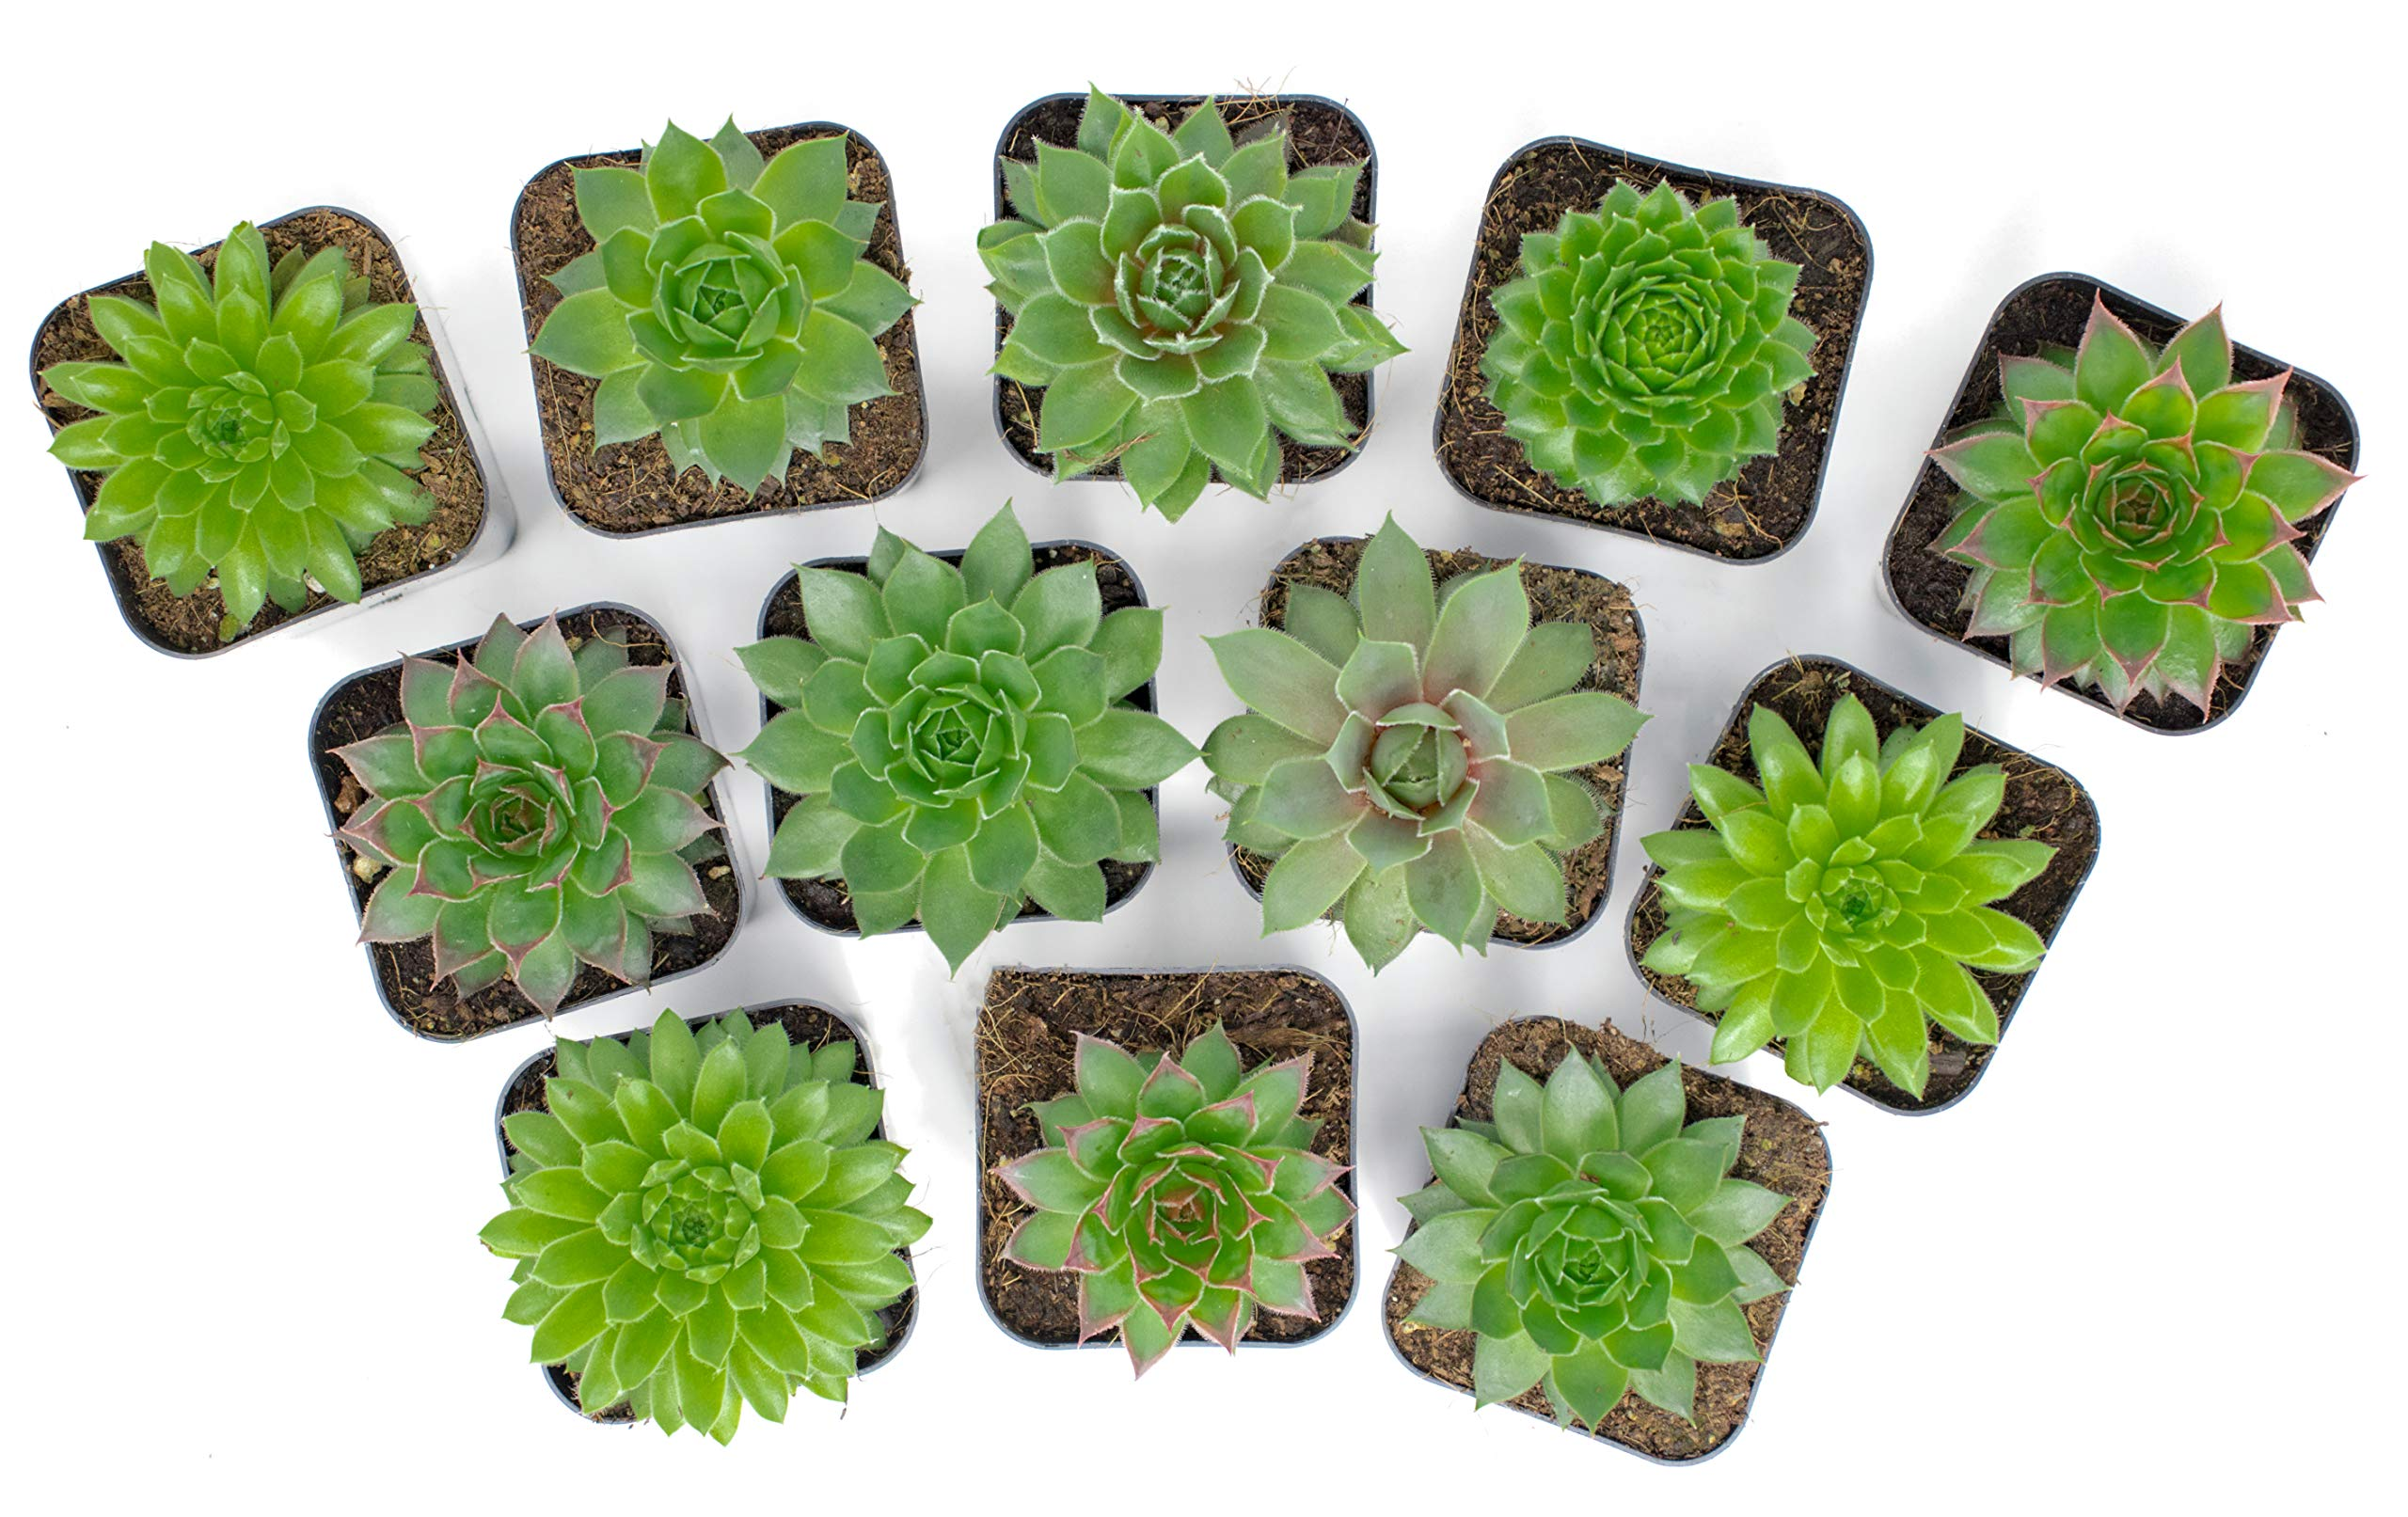 Succulent Plants | 20 Sempervivum Succulents | Rooted in Planter Pots with Soil | Real Live Indoor Plants | Gifts or Room Decor by Plants for Pets by Plants for Pets (Image #8)